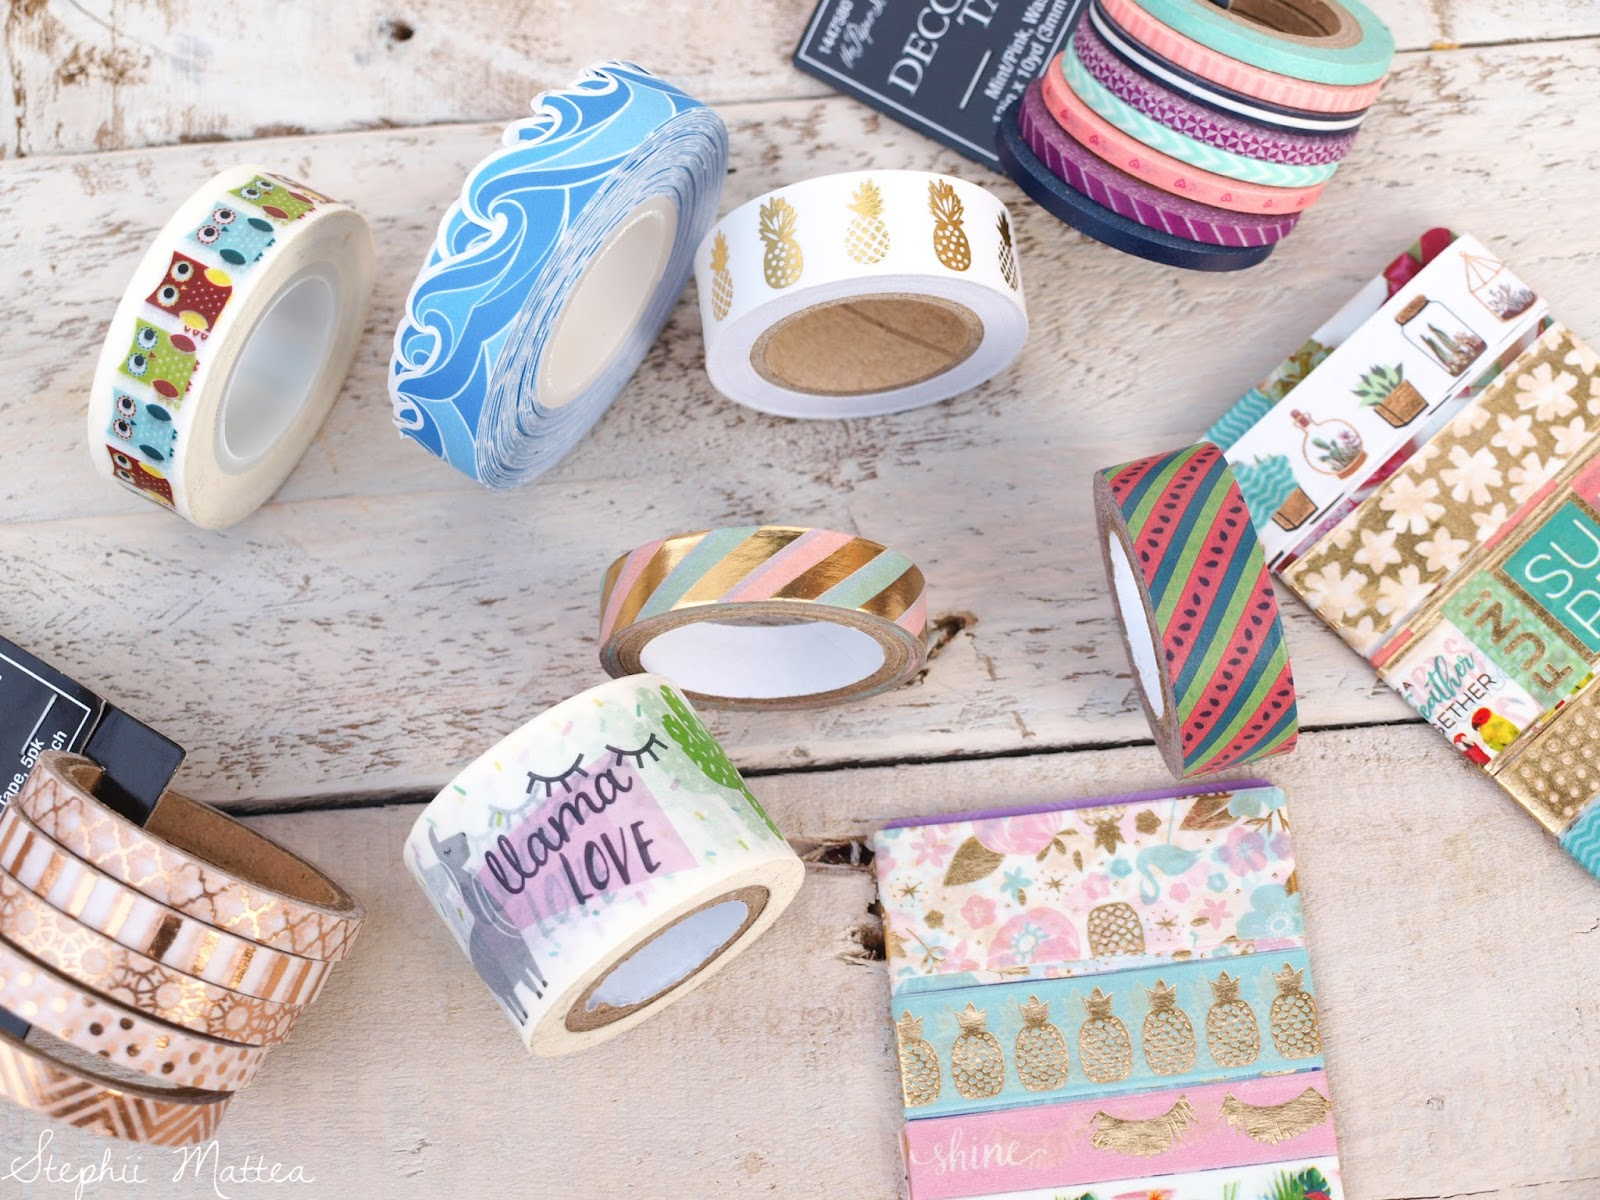 Faithful 25 Colorful Washi Tape Decorative Masking Tape For Diy Crafts Kids Art Projects Planner Journal Scrapbook Gift Wrapping